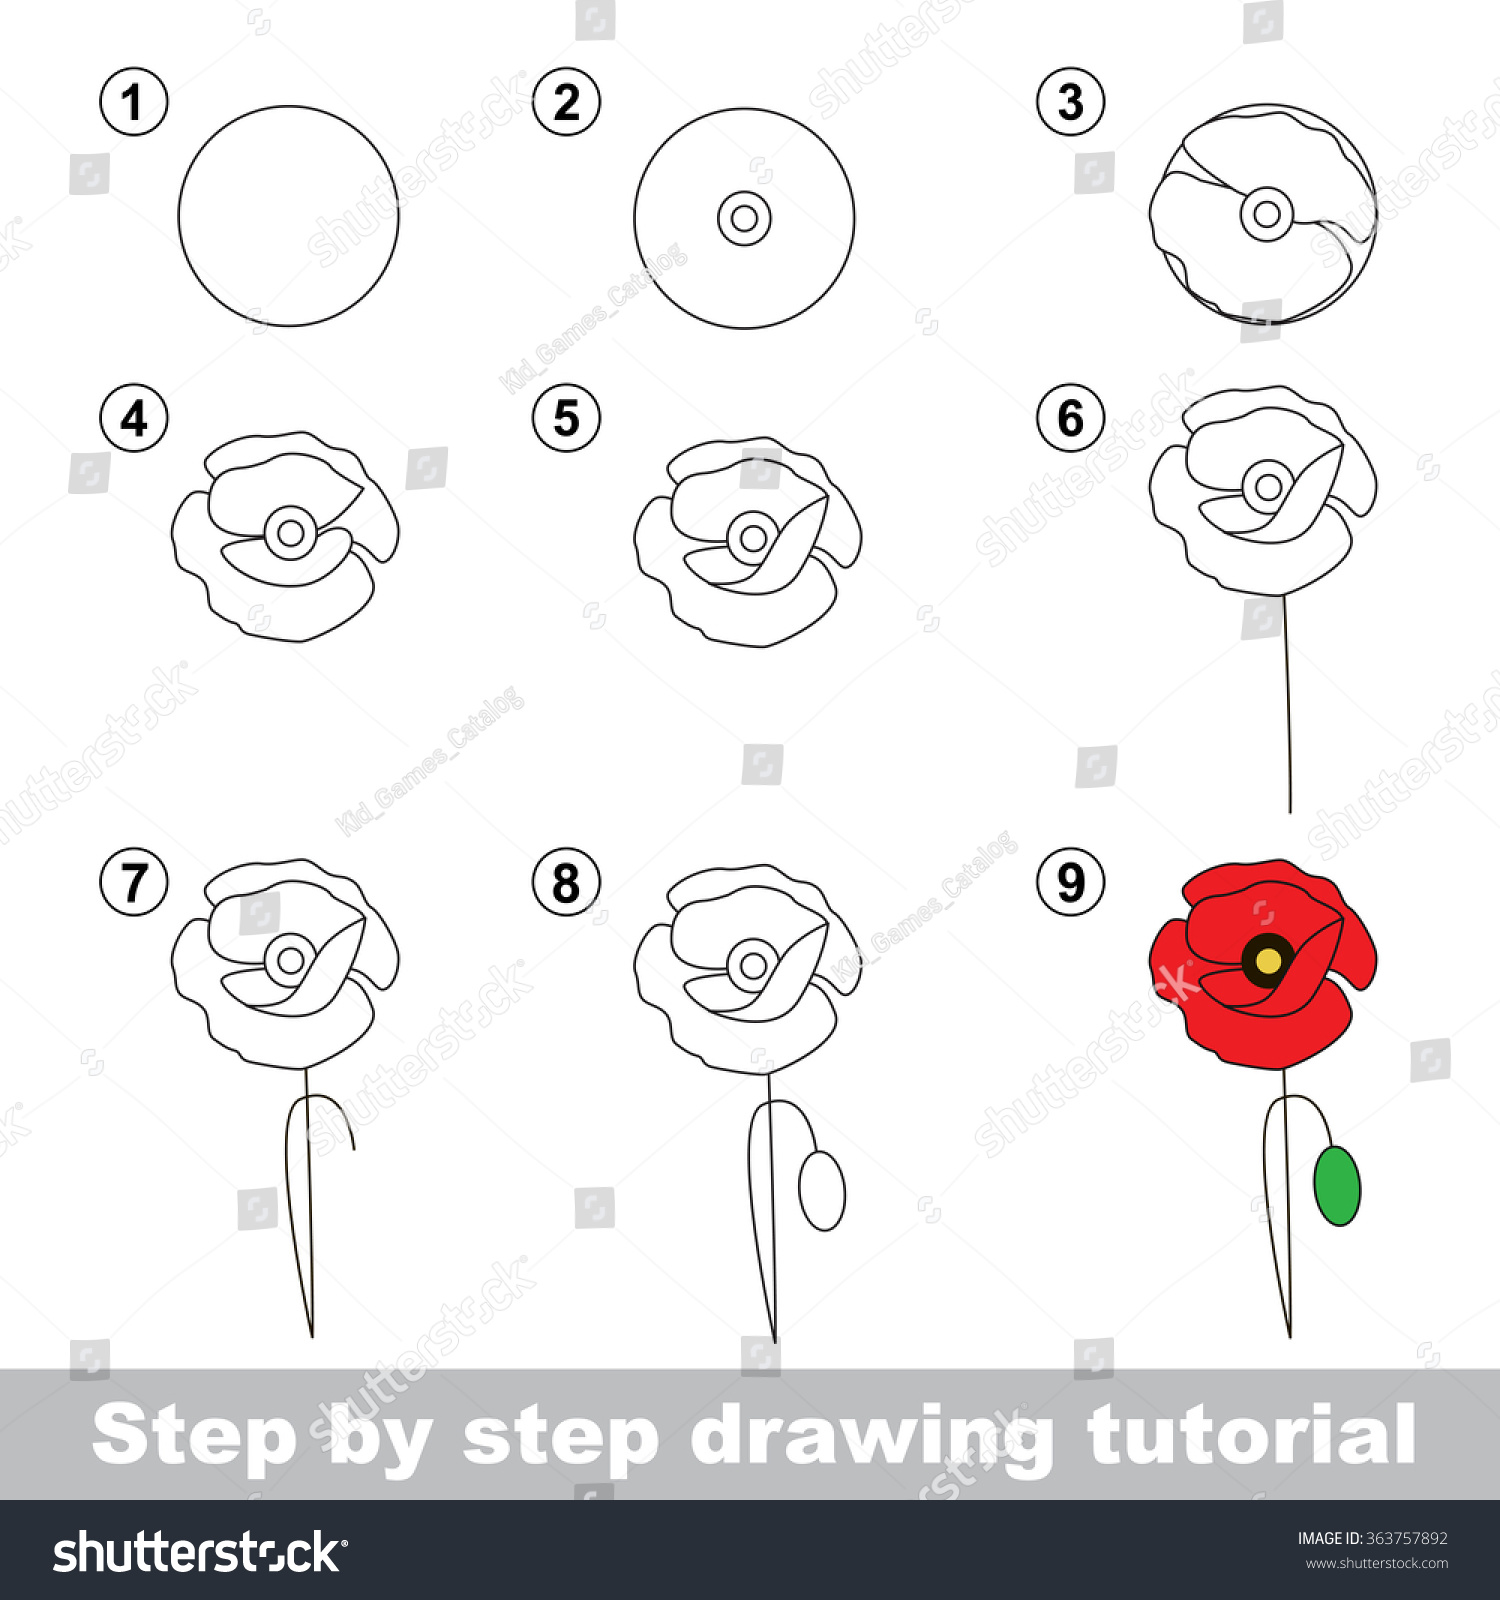 Step by step drawing tutorial vector stock vector for How to draw the flower of life step by step